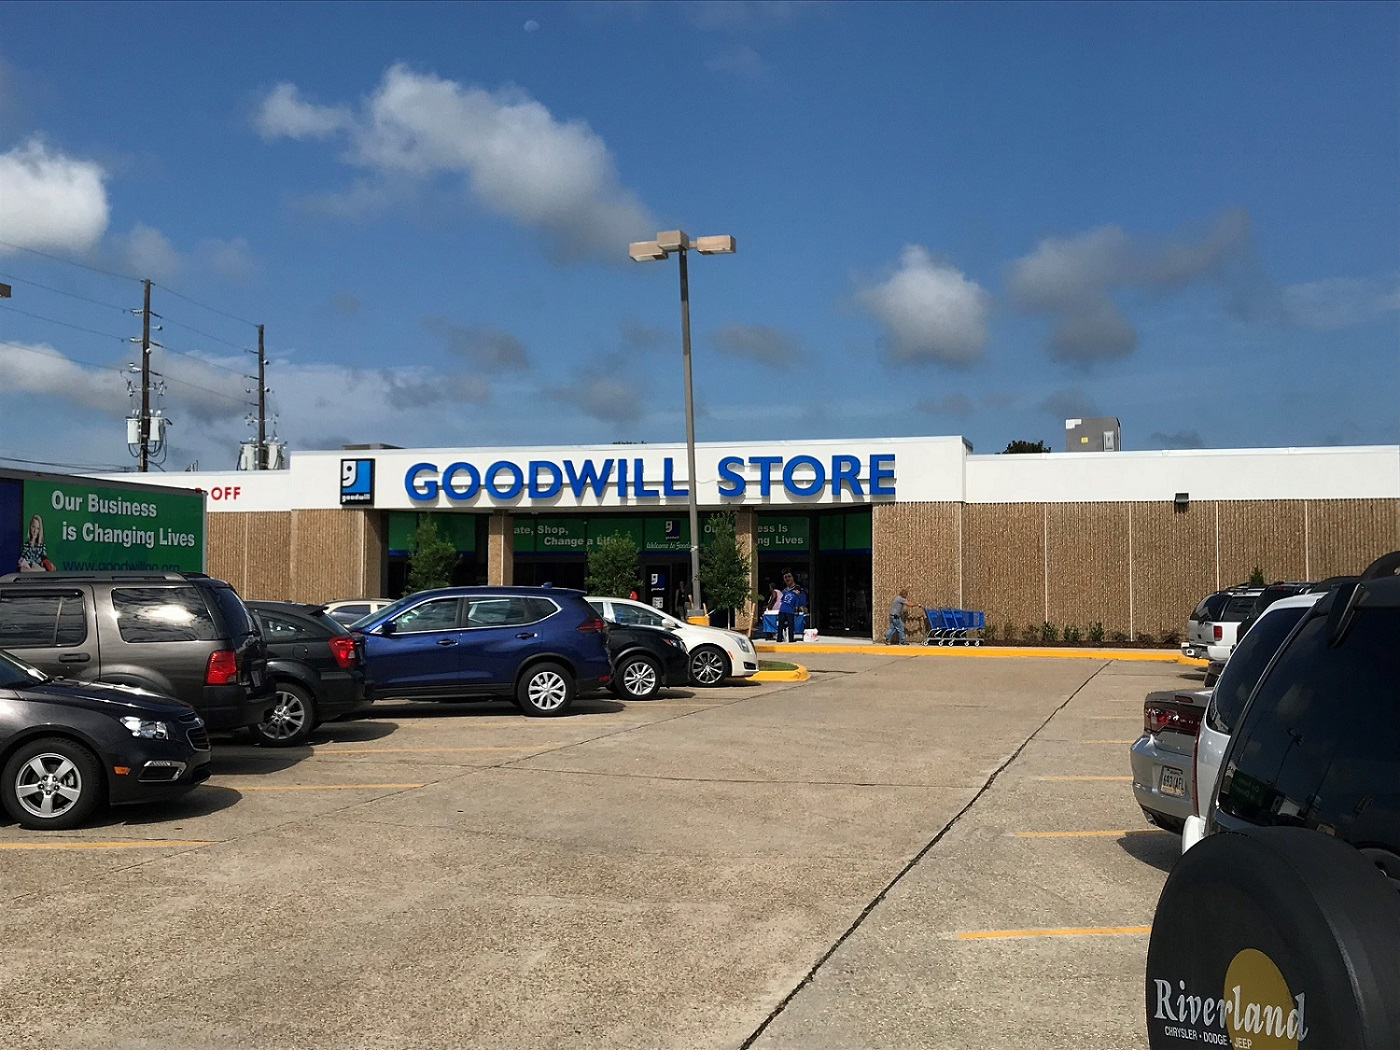 Net Leased Goodwill Property